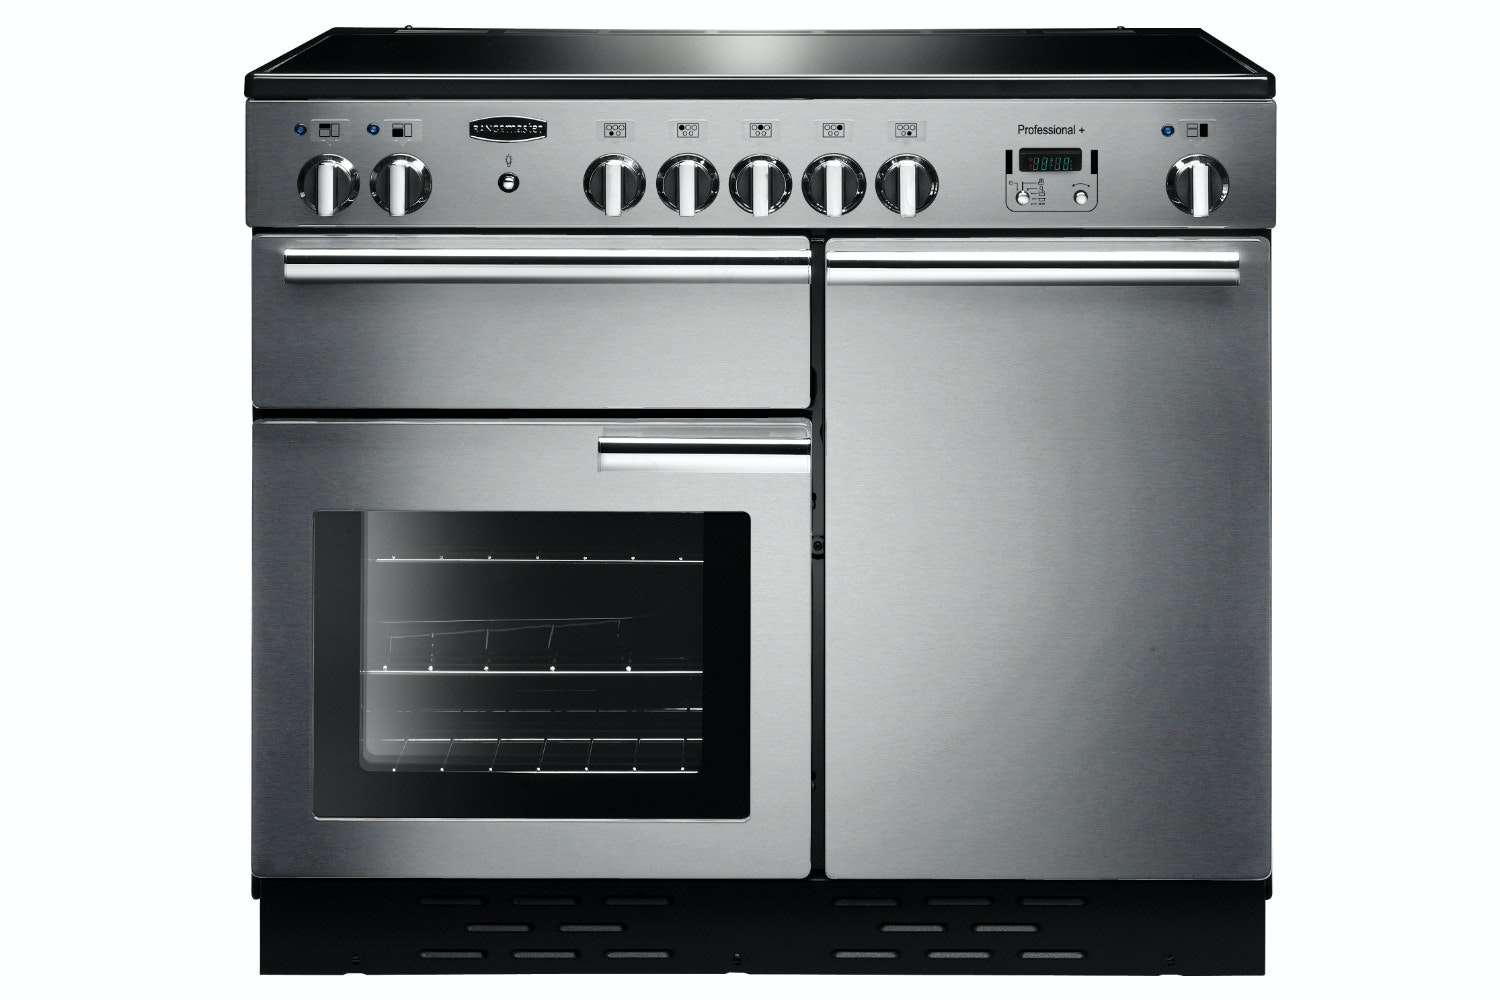 Rangemaster Pro Plus 100cm Induction Range Cooker | PROP100EISS/C | Stainless Steel